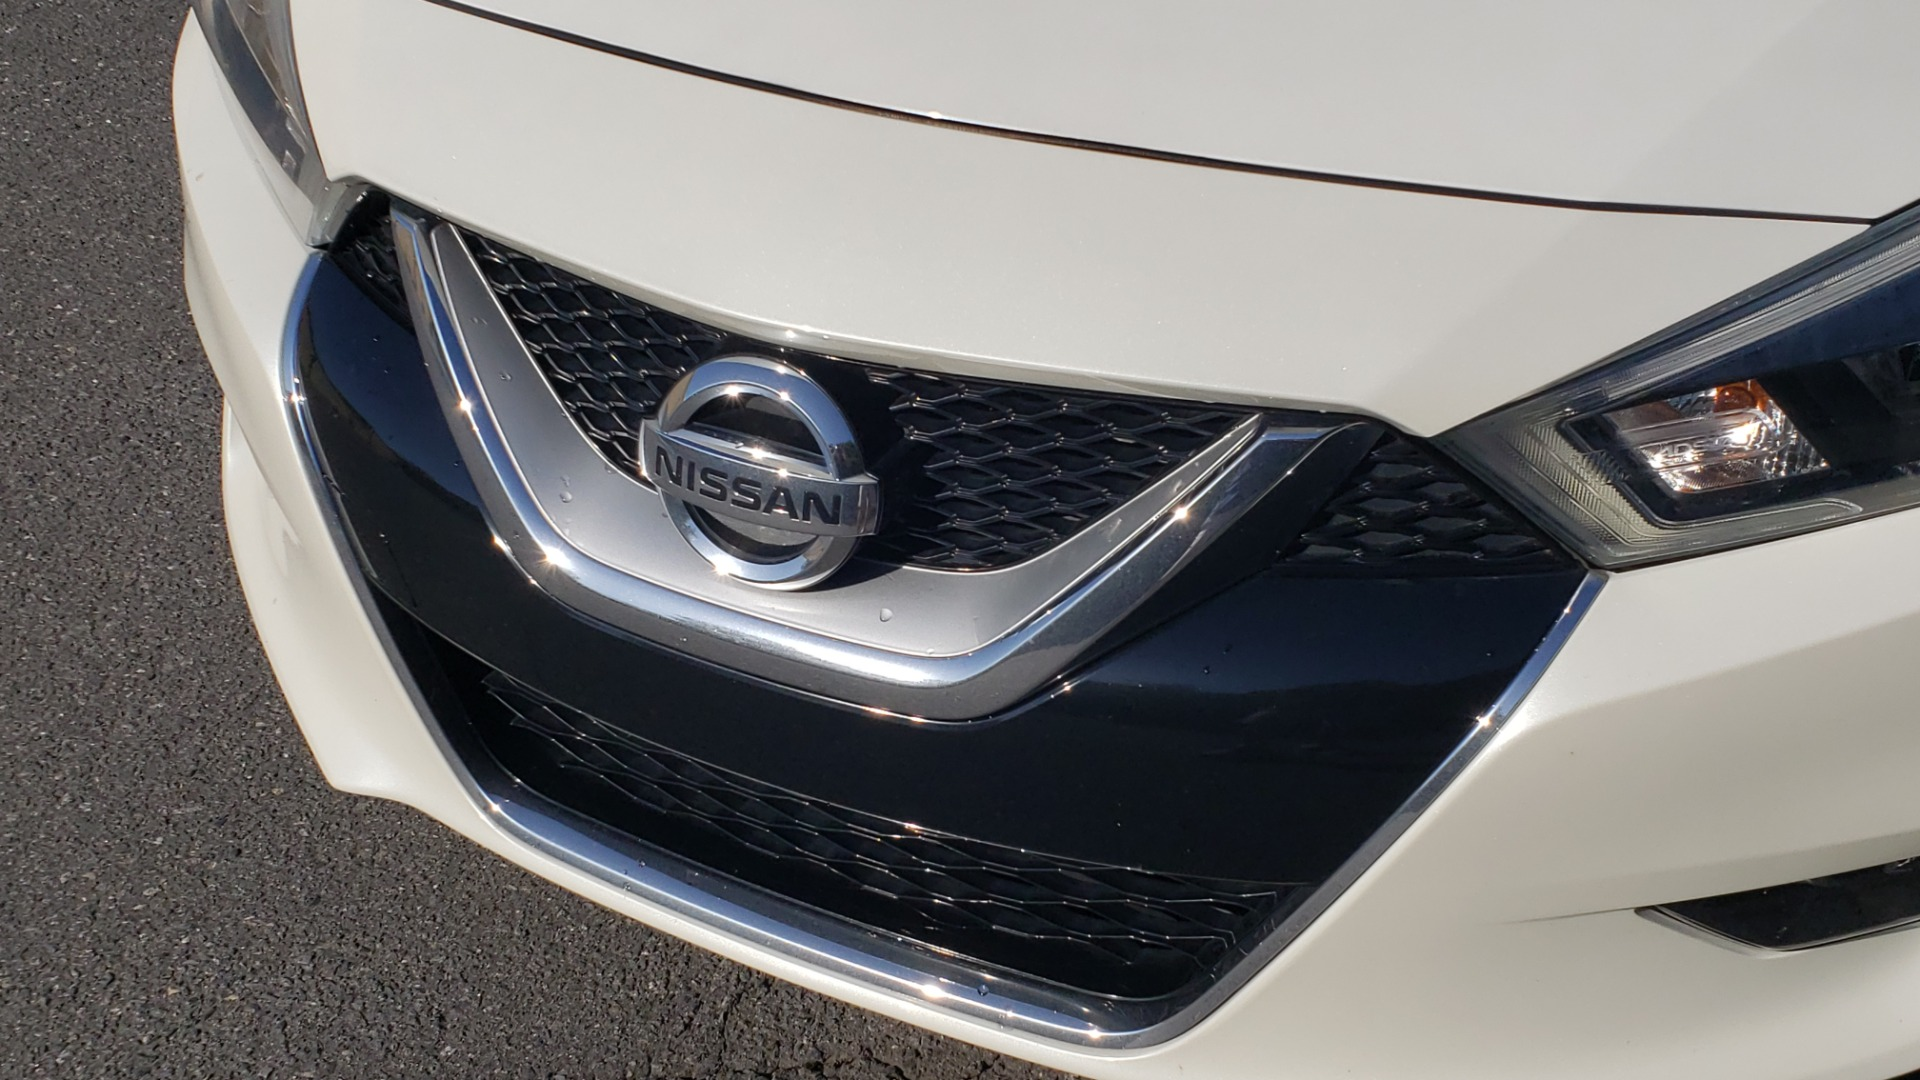 Used 2016 Nissan MAXIMA 3.5 SR / NAV / BOSE / VENT STS / CVT / REARVIEW for sale Sold at Formula Imports in Charlotte NC 28227 22